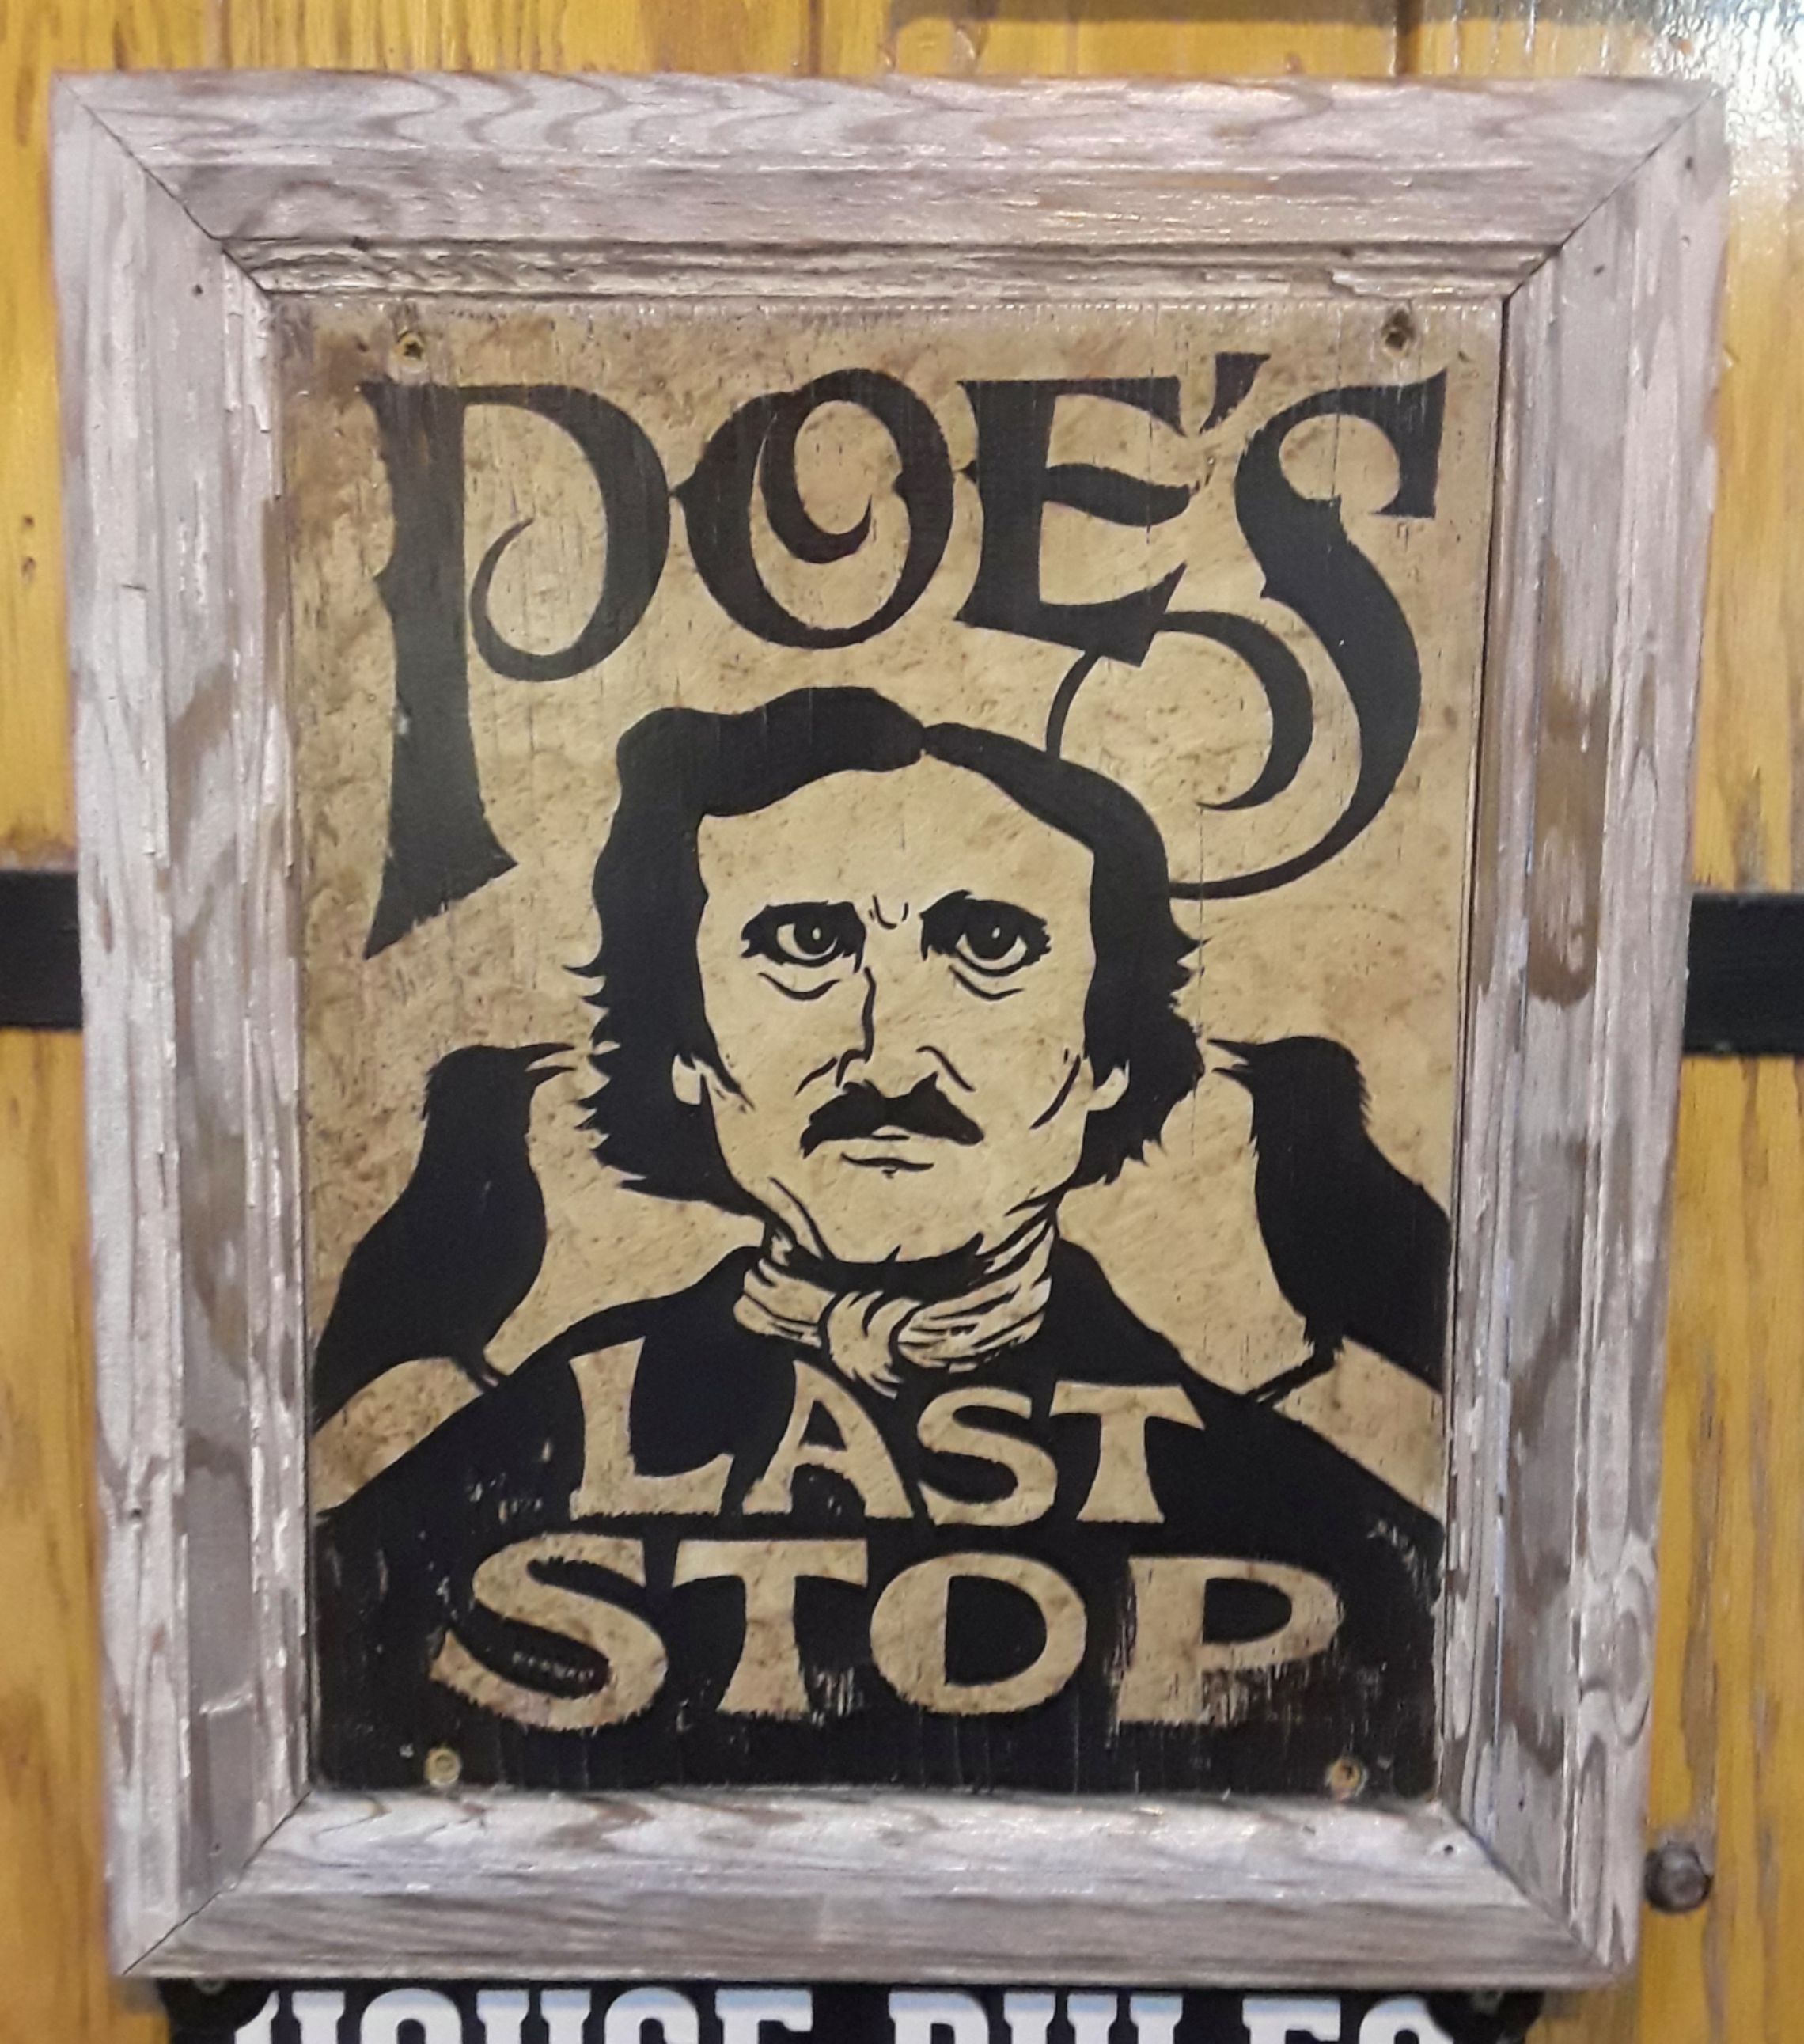 The Horse You Came In On Saloon: Edgar Allan Poe in Baltimore